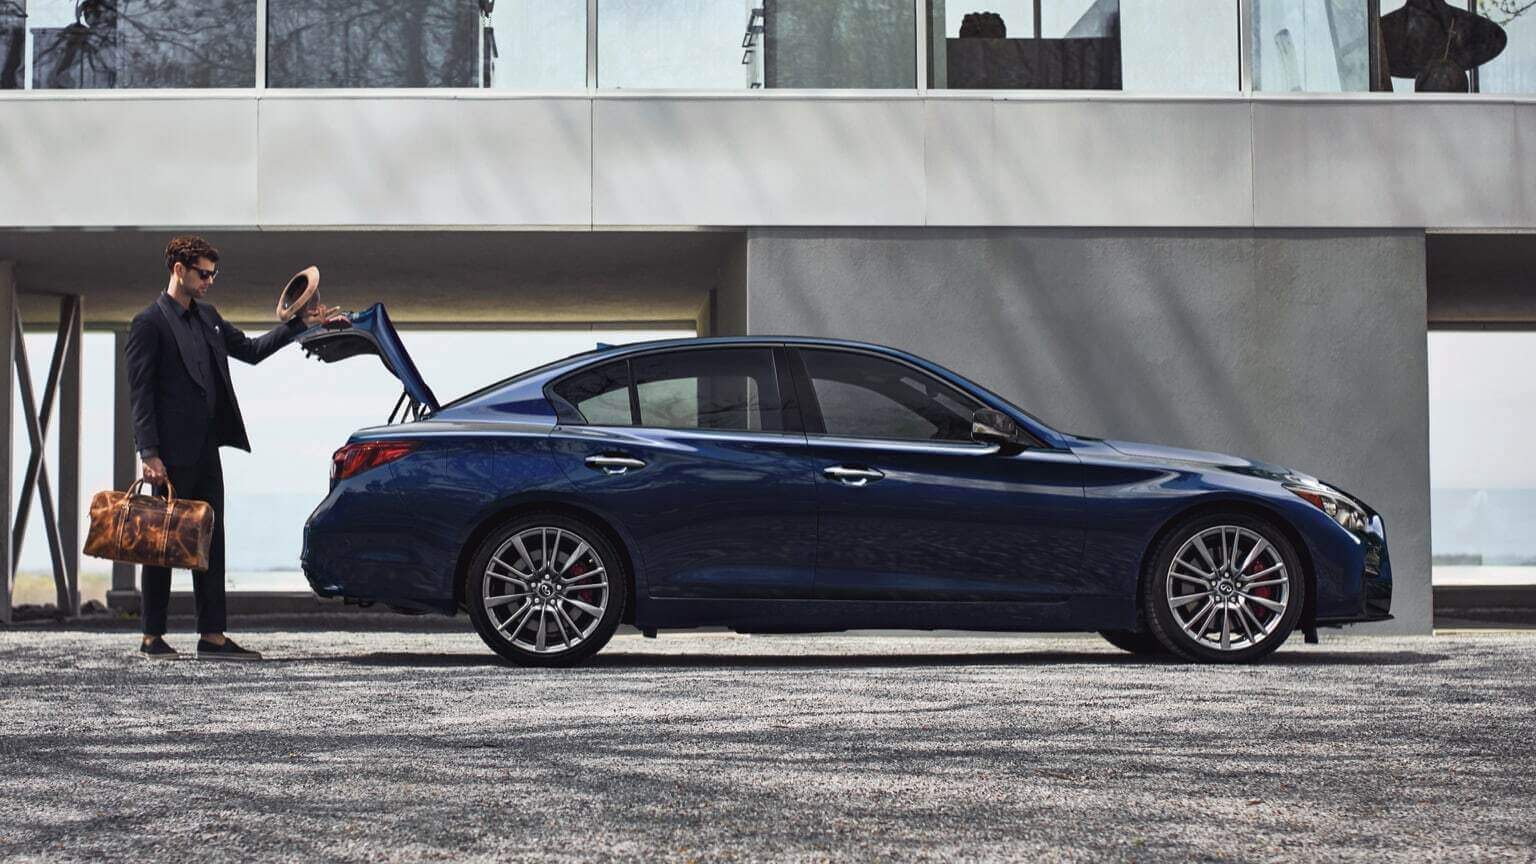 2021 Infiniti Q50 with refreshed styling and color pallette